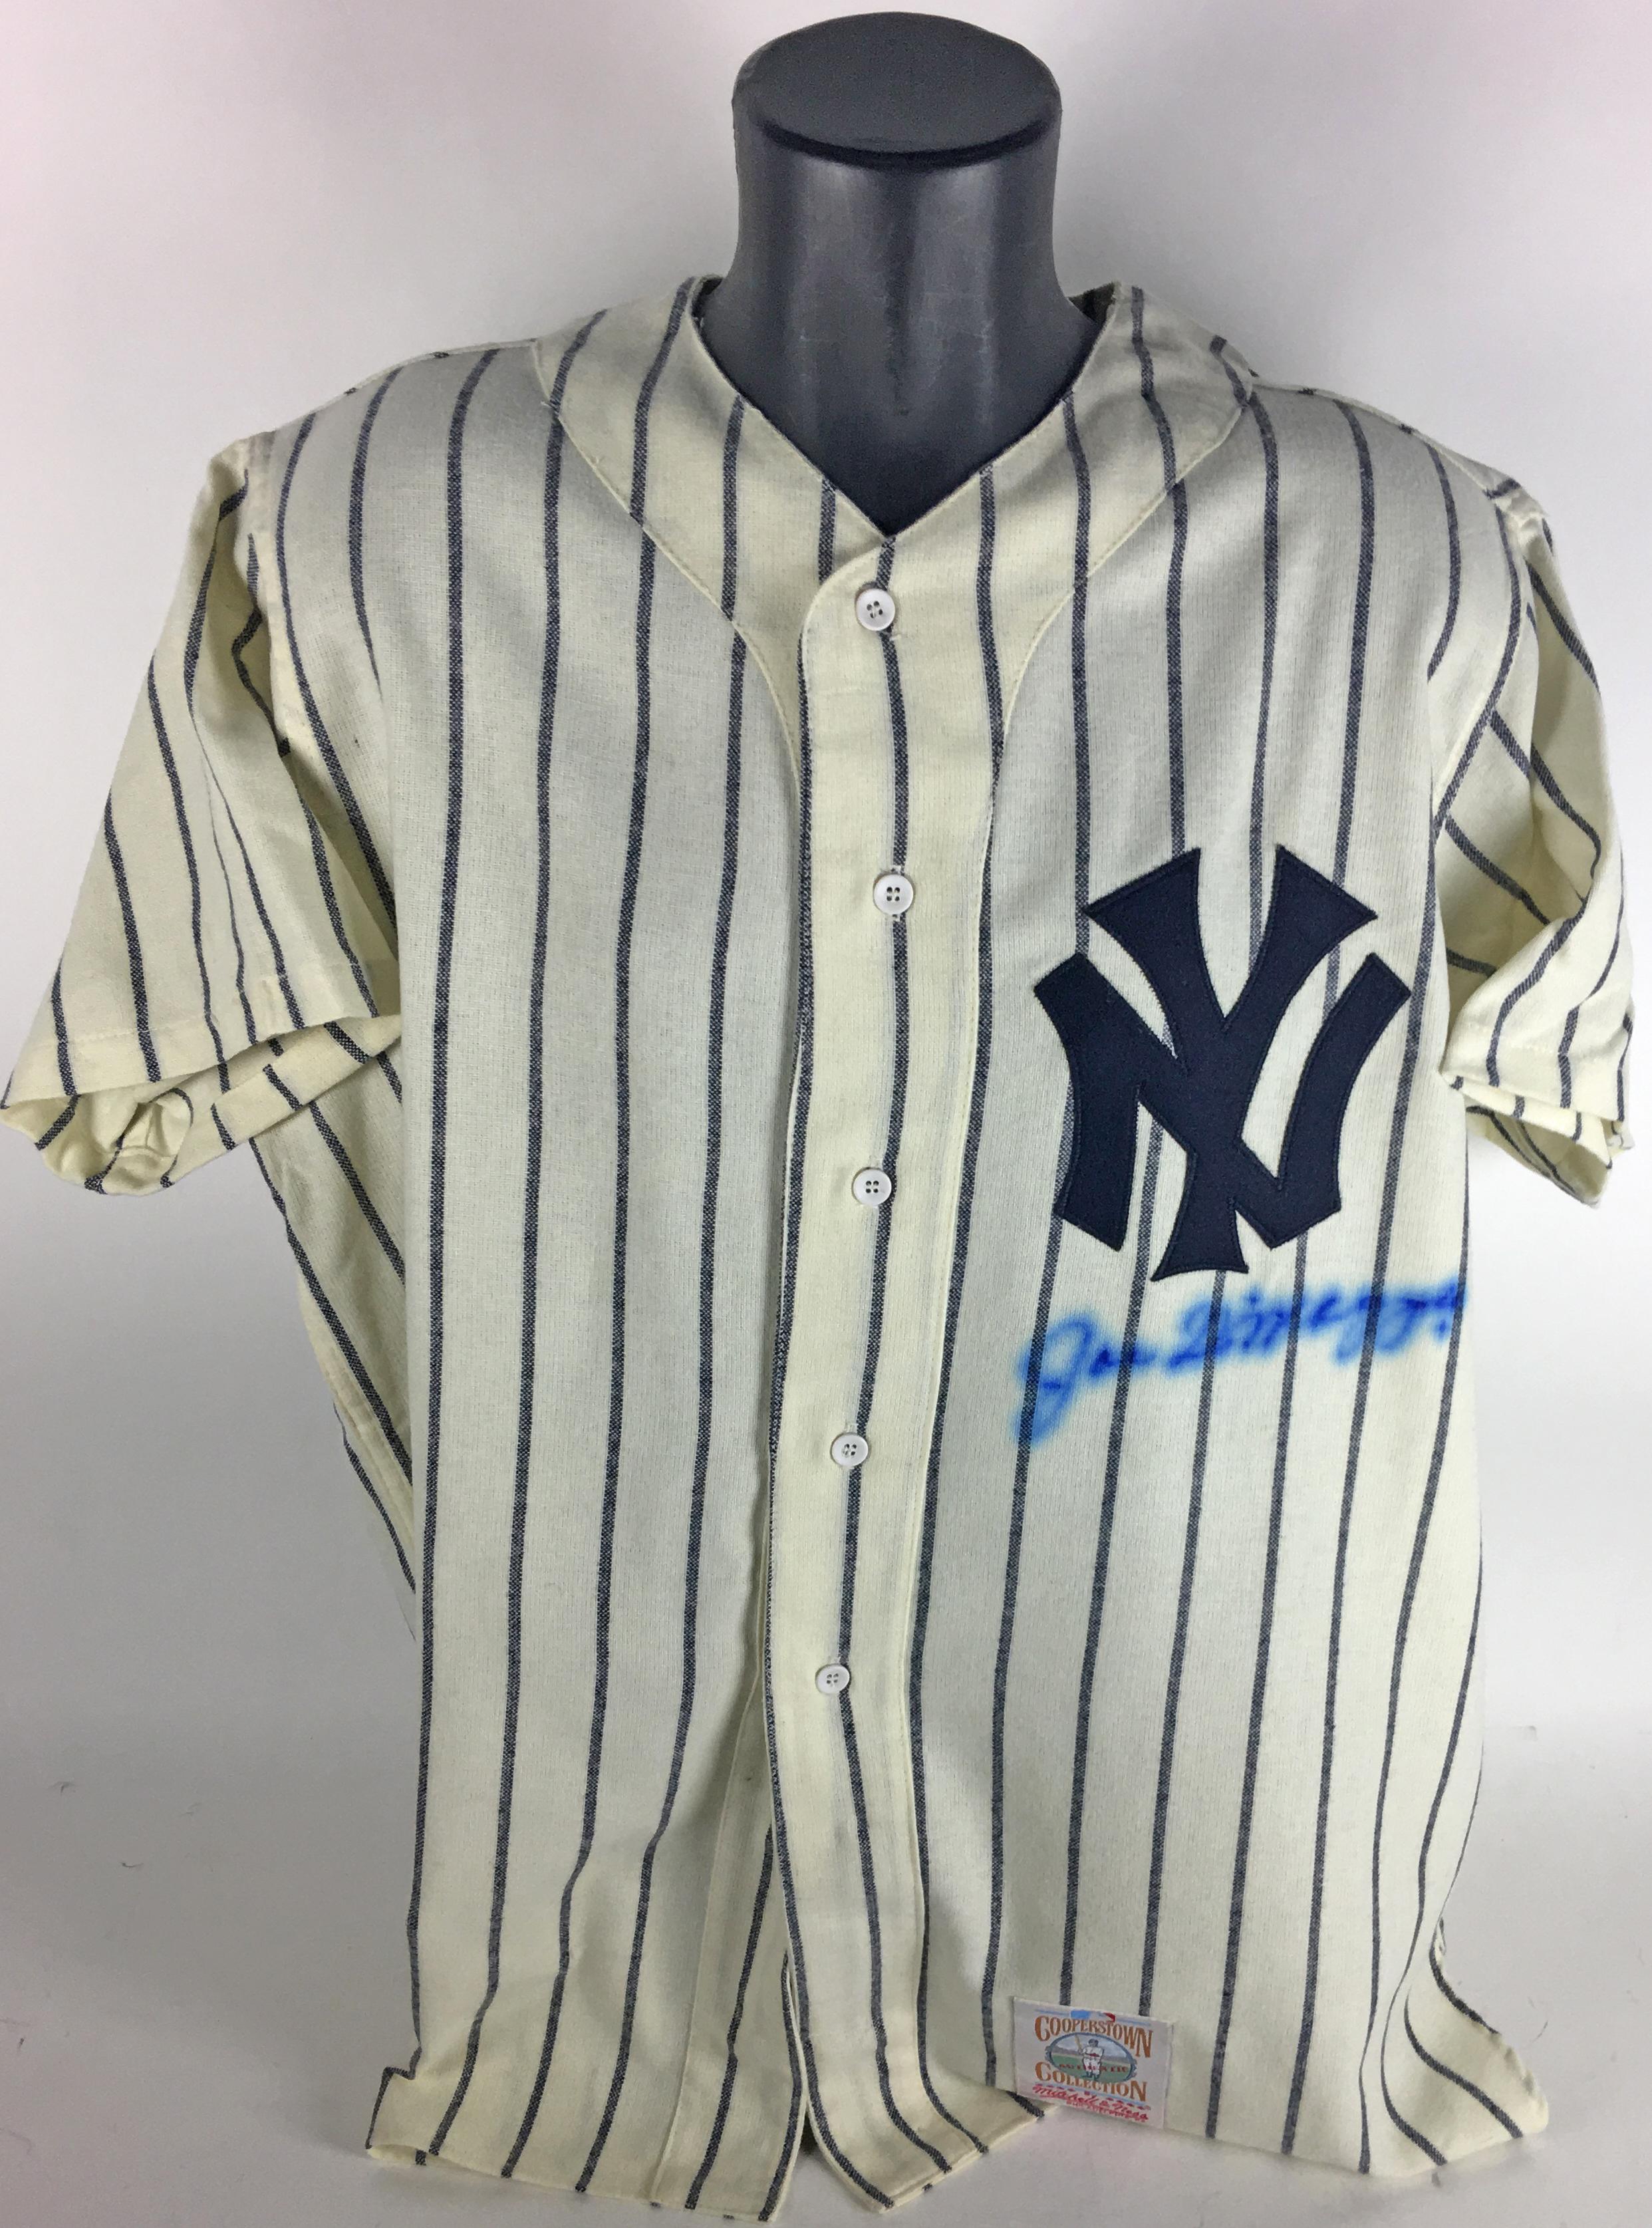 official photos 1b274 0a7c9 Lot Detail - Joe DiMaggio Signed Mitchell & Ness Yankees ...